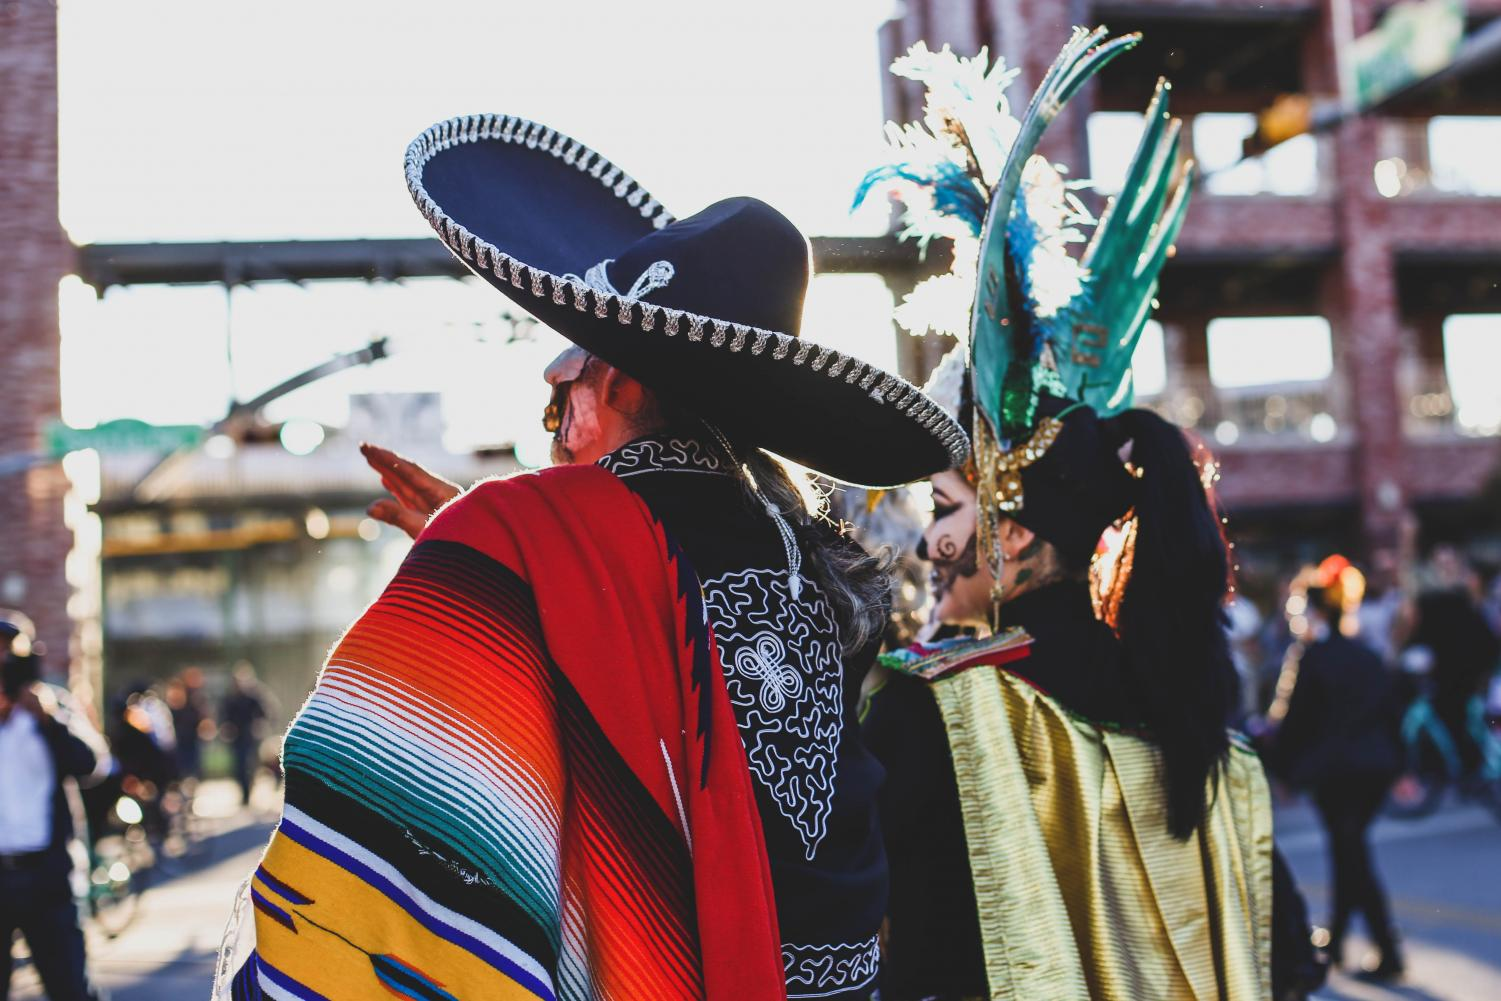 Attendees+dress+with+traditional+Mexican+clothings+and+paint+their+face+as+catrinas+to+celebrate+the+Day+of+the+Dead+on+Saturday%2C+Nov.+3+at+Down+Town+El+Paso.+